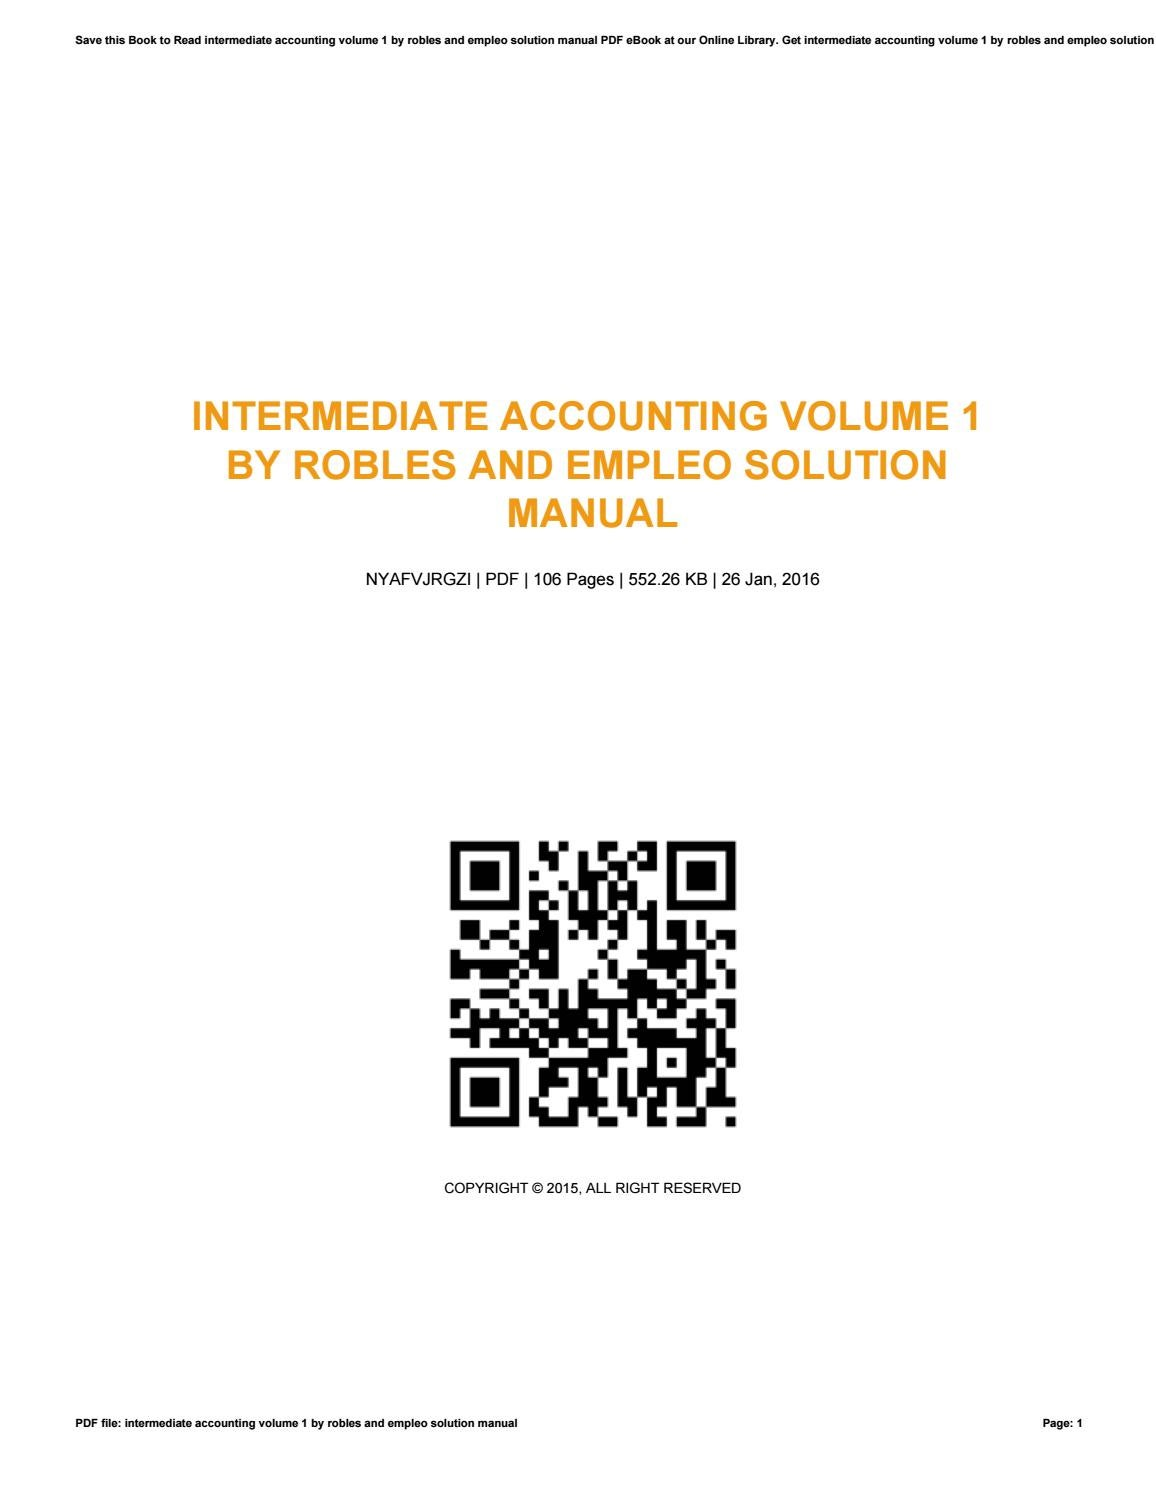 Intermediate accounting volume 1 by robles and empleo solution manual by  RickyThrall3706 - issuu